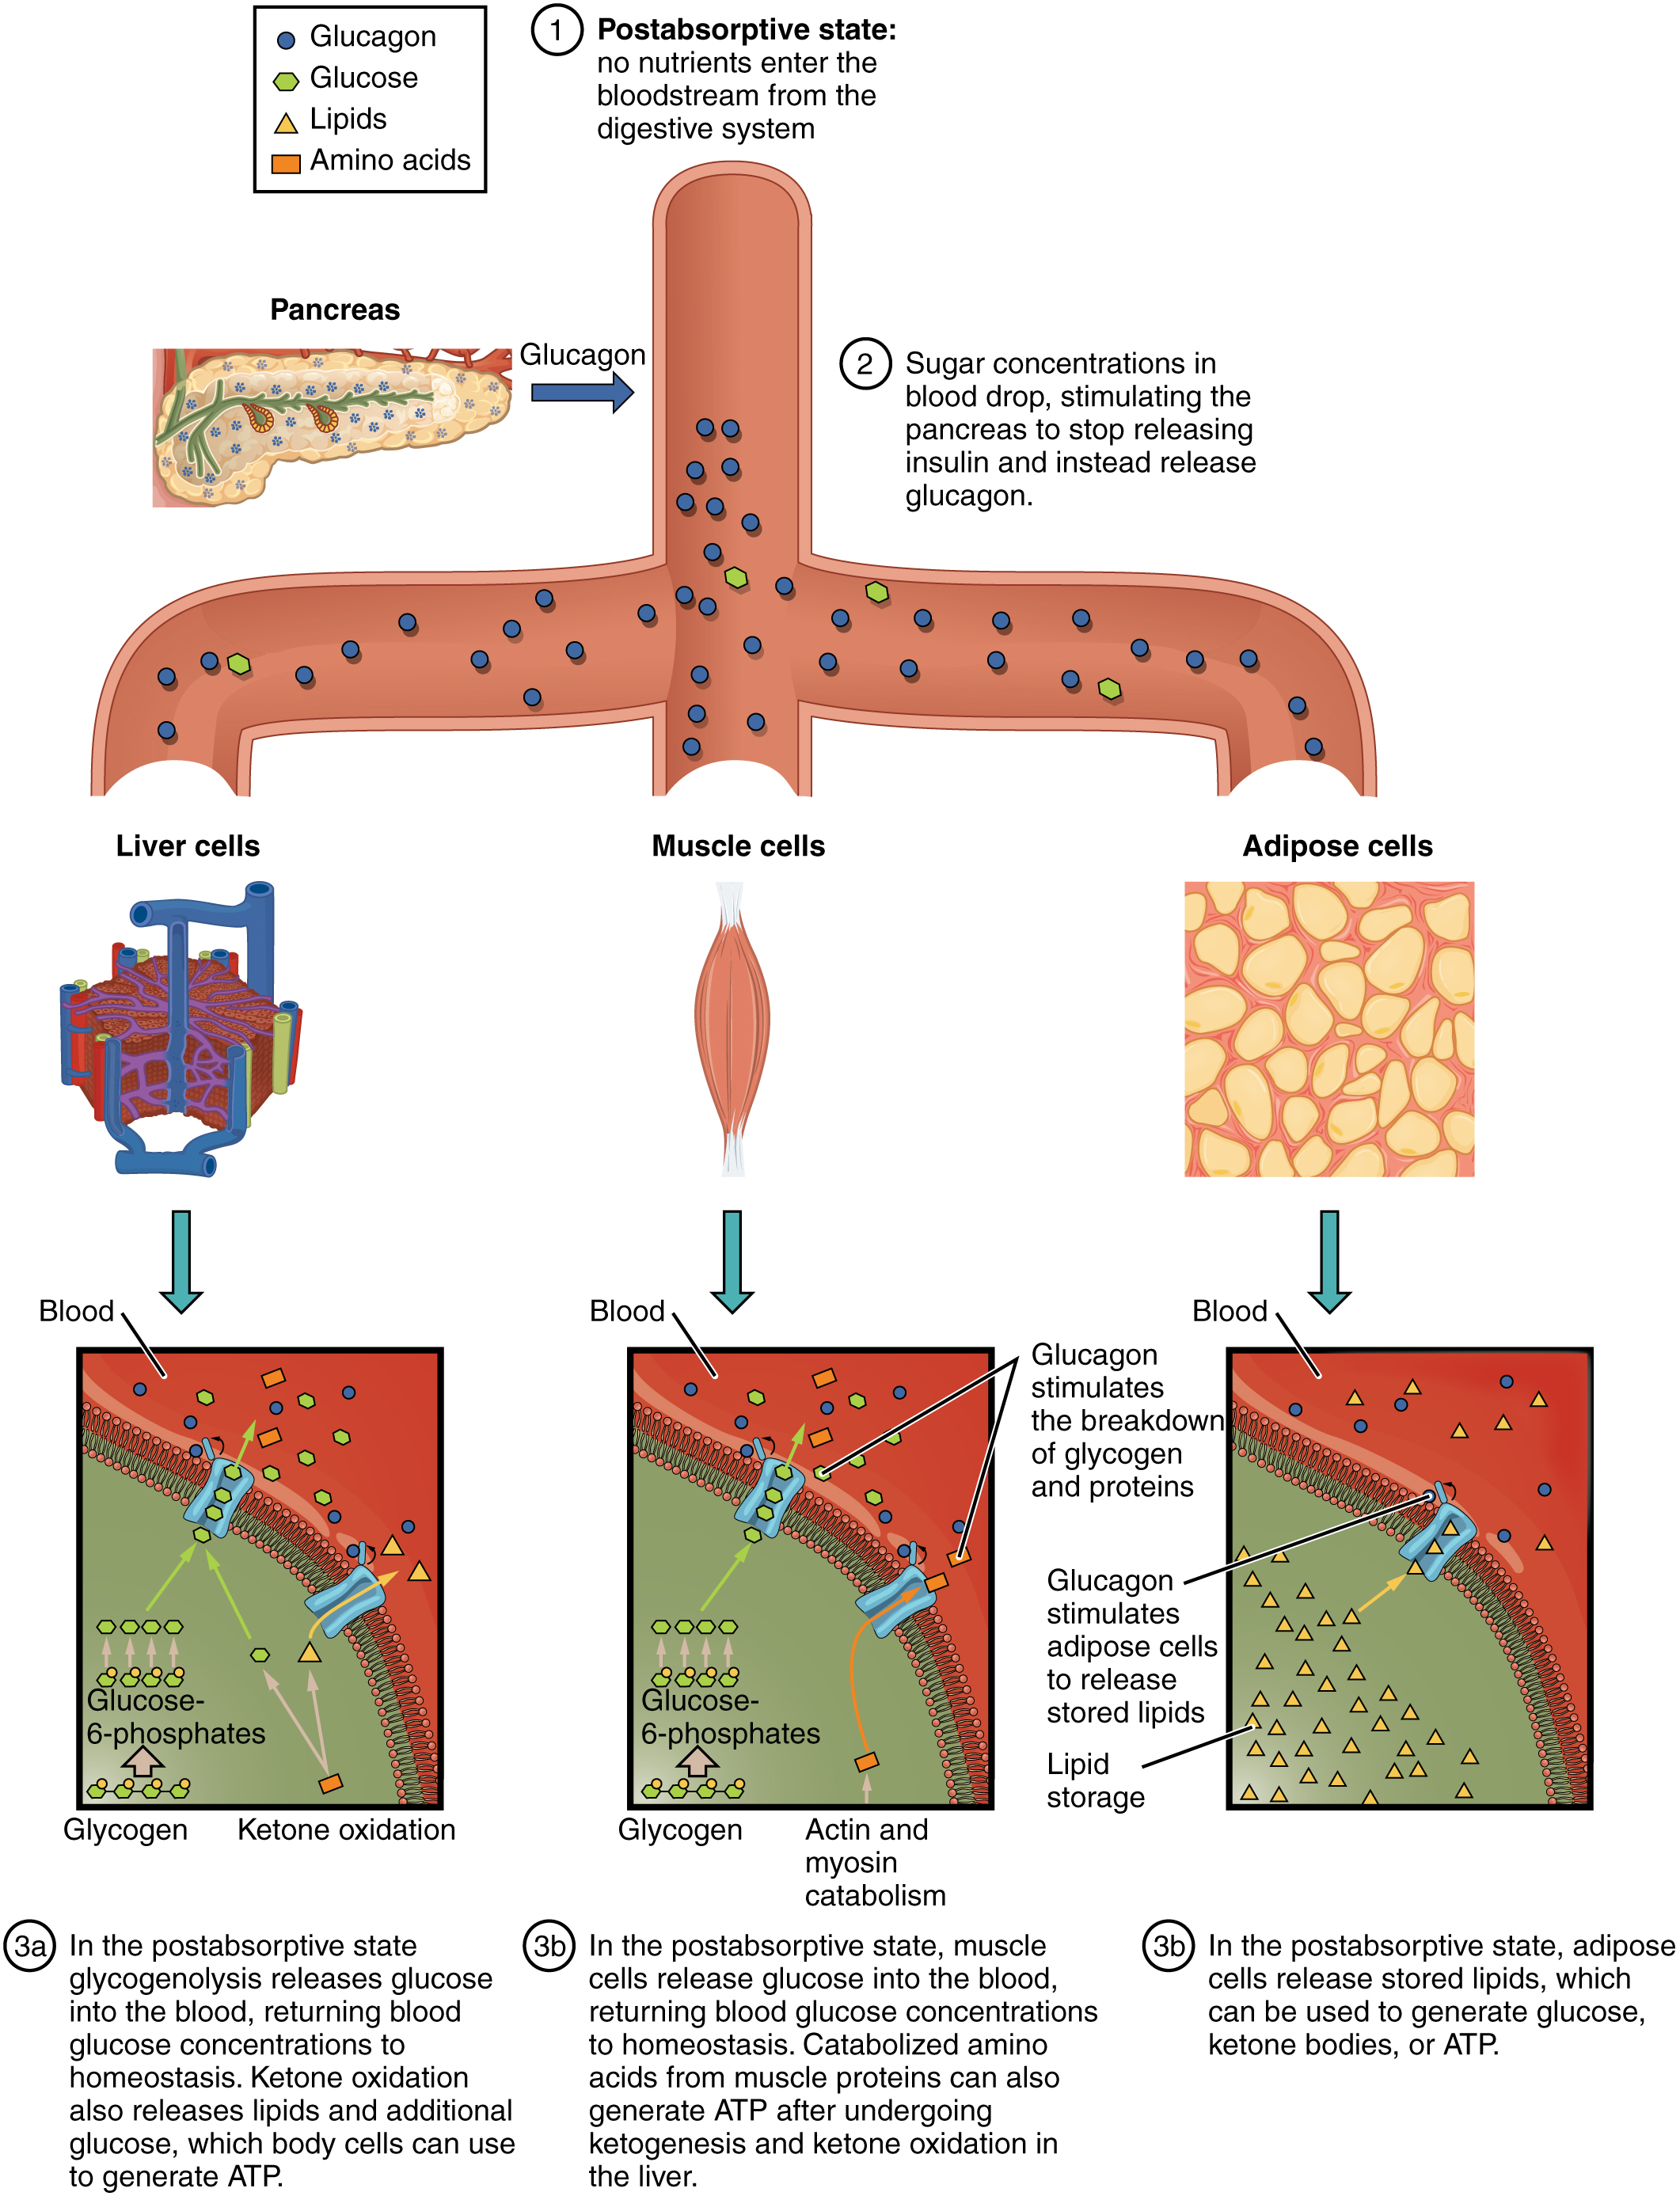 This figure shows the postabsorptive stage where no nutrients enter the blood stream from the digestive system and its effects of liver cells, muscle cells, and adipose cells.